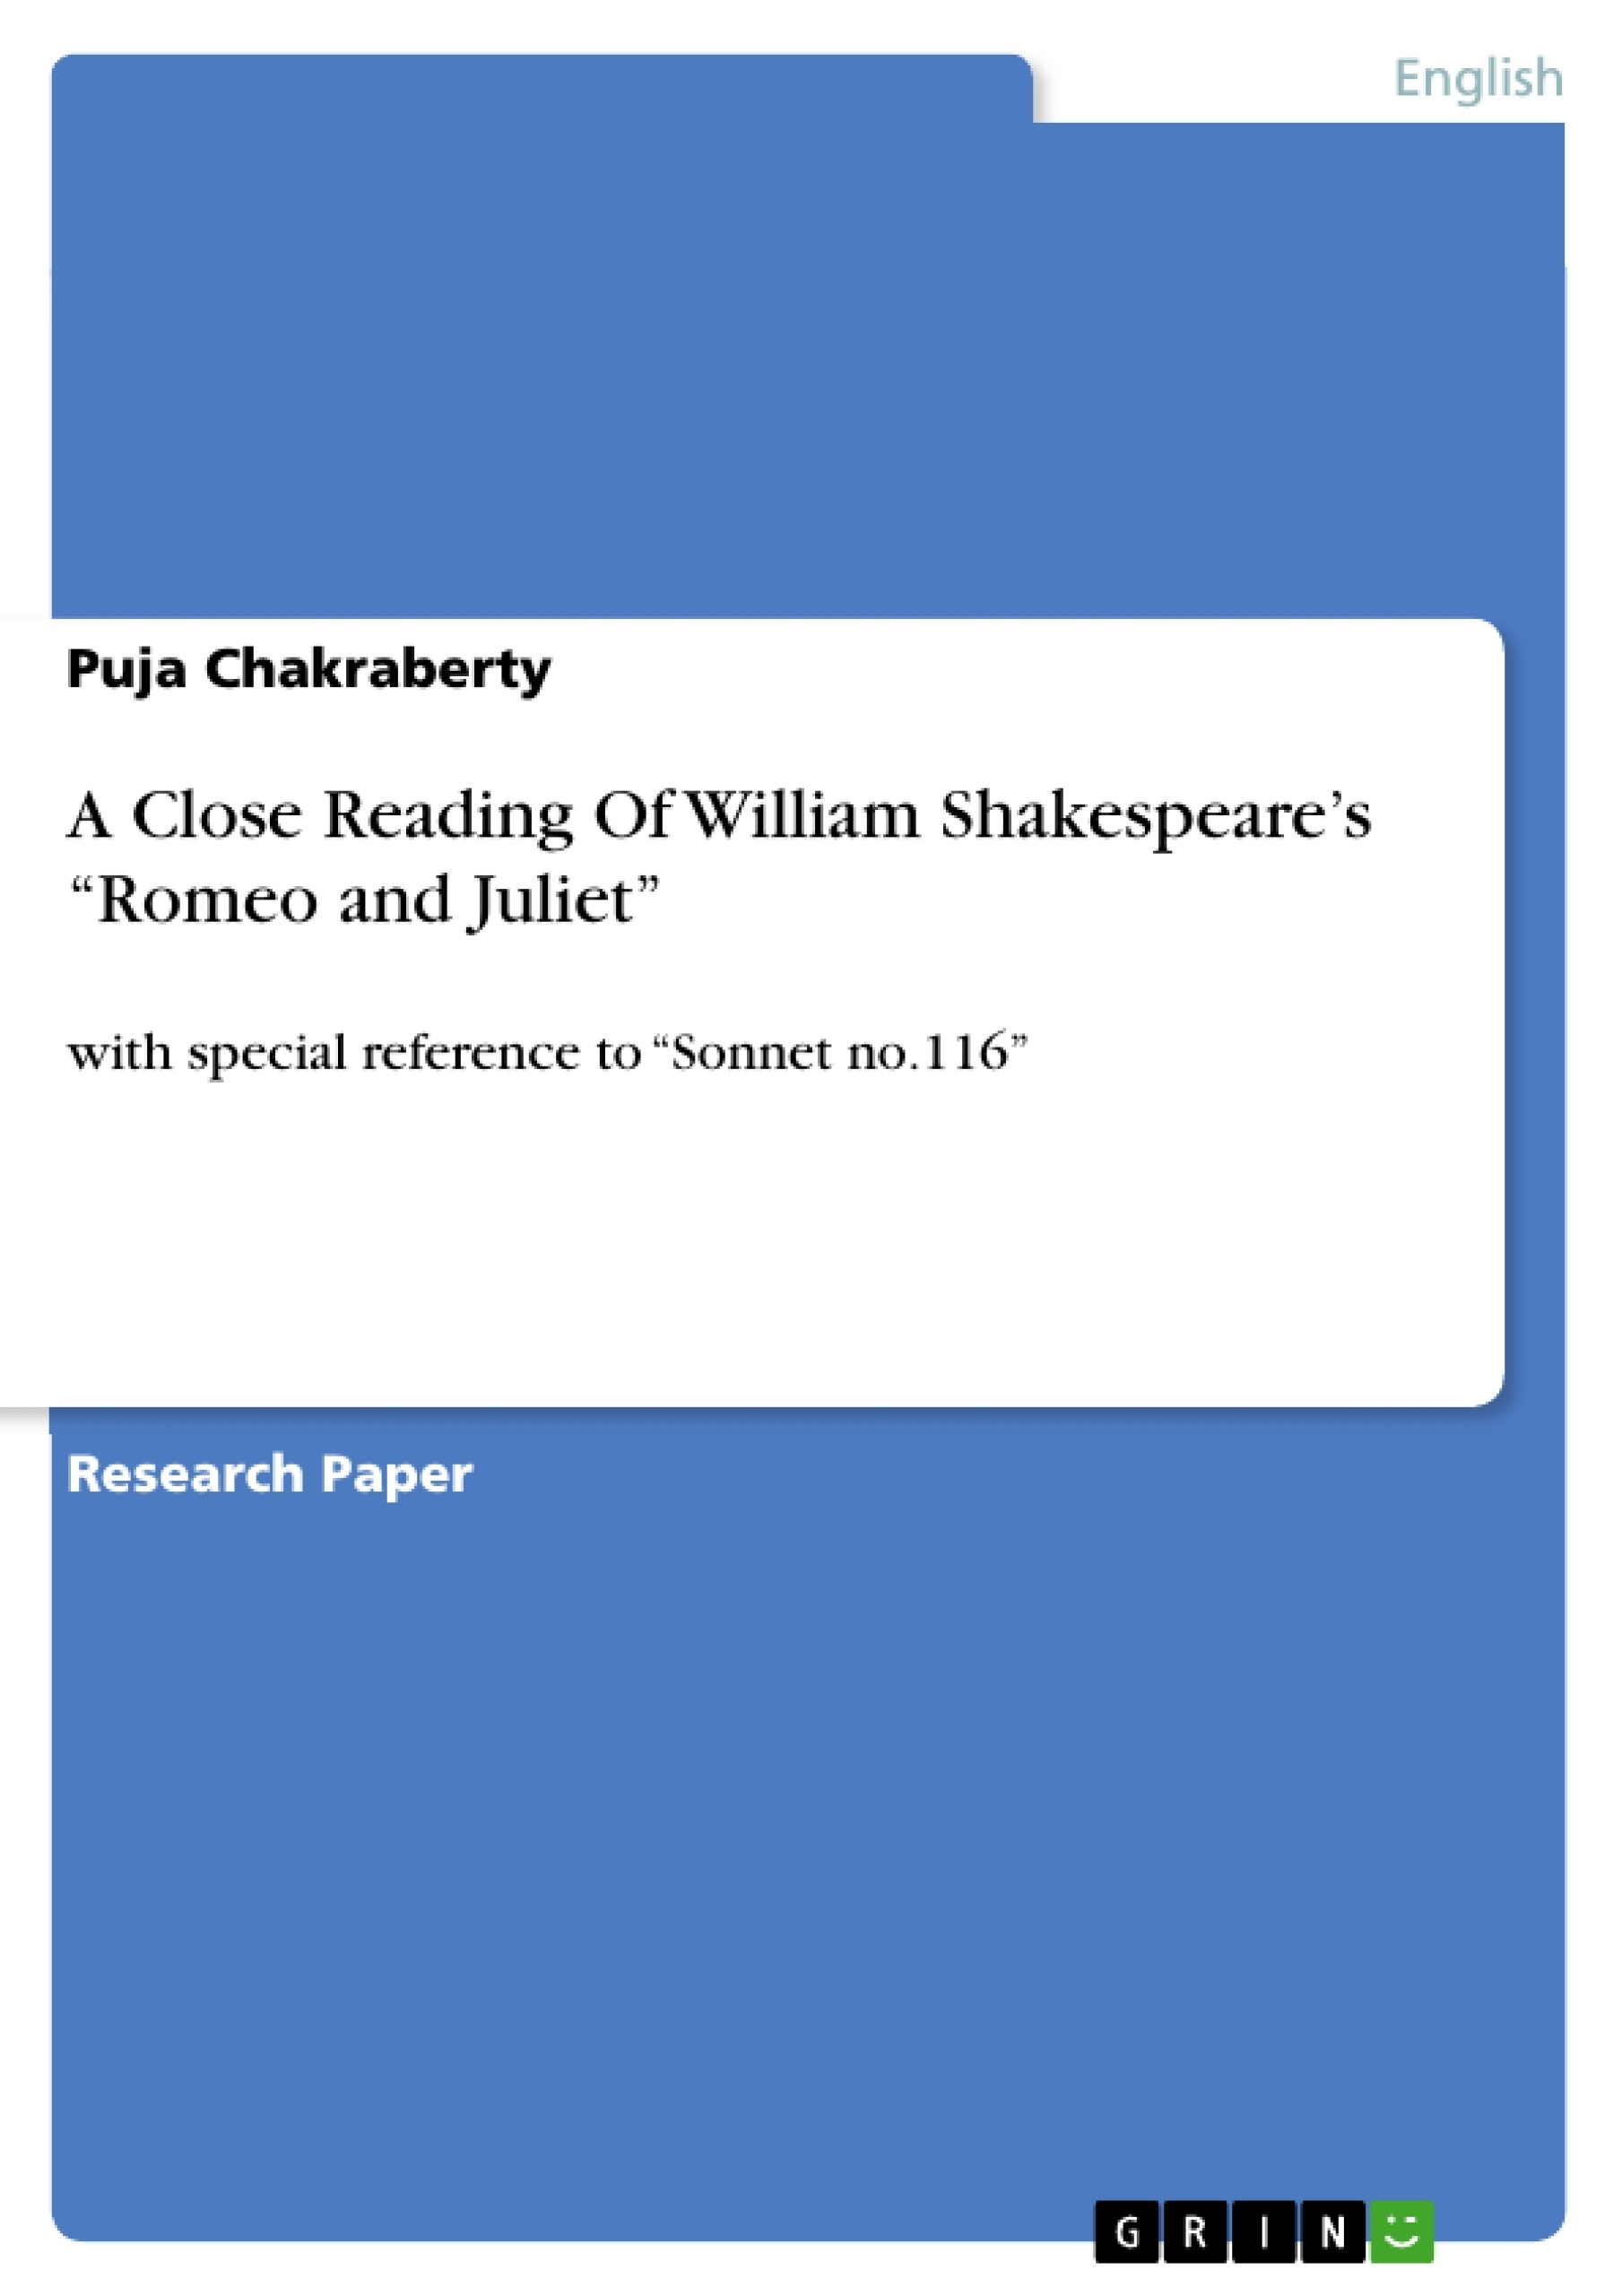 a close reading of william shakespeare s ldquo romeo and juliet a close reading of william shakespeare s ldquoromeo and julietrdquo publish your master s thesis bachelor s thesis essay or term paper